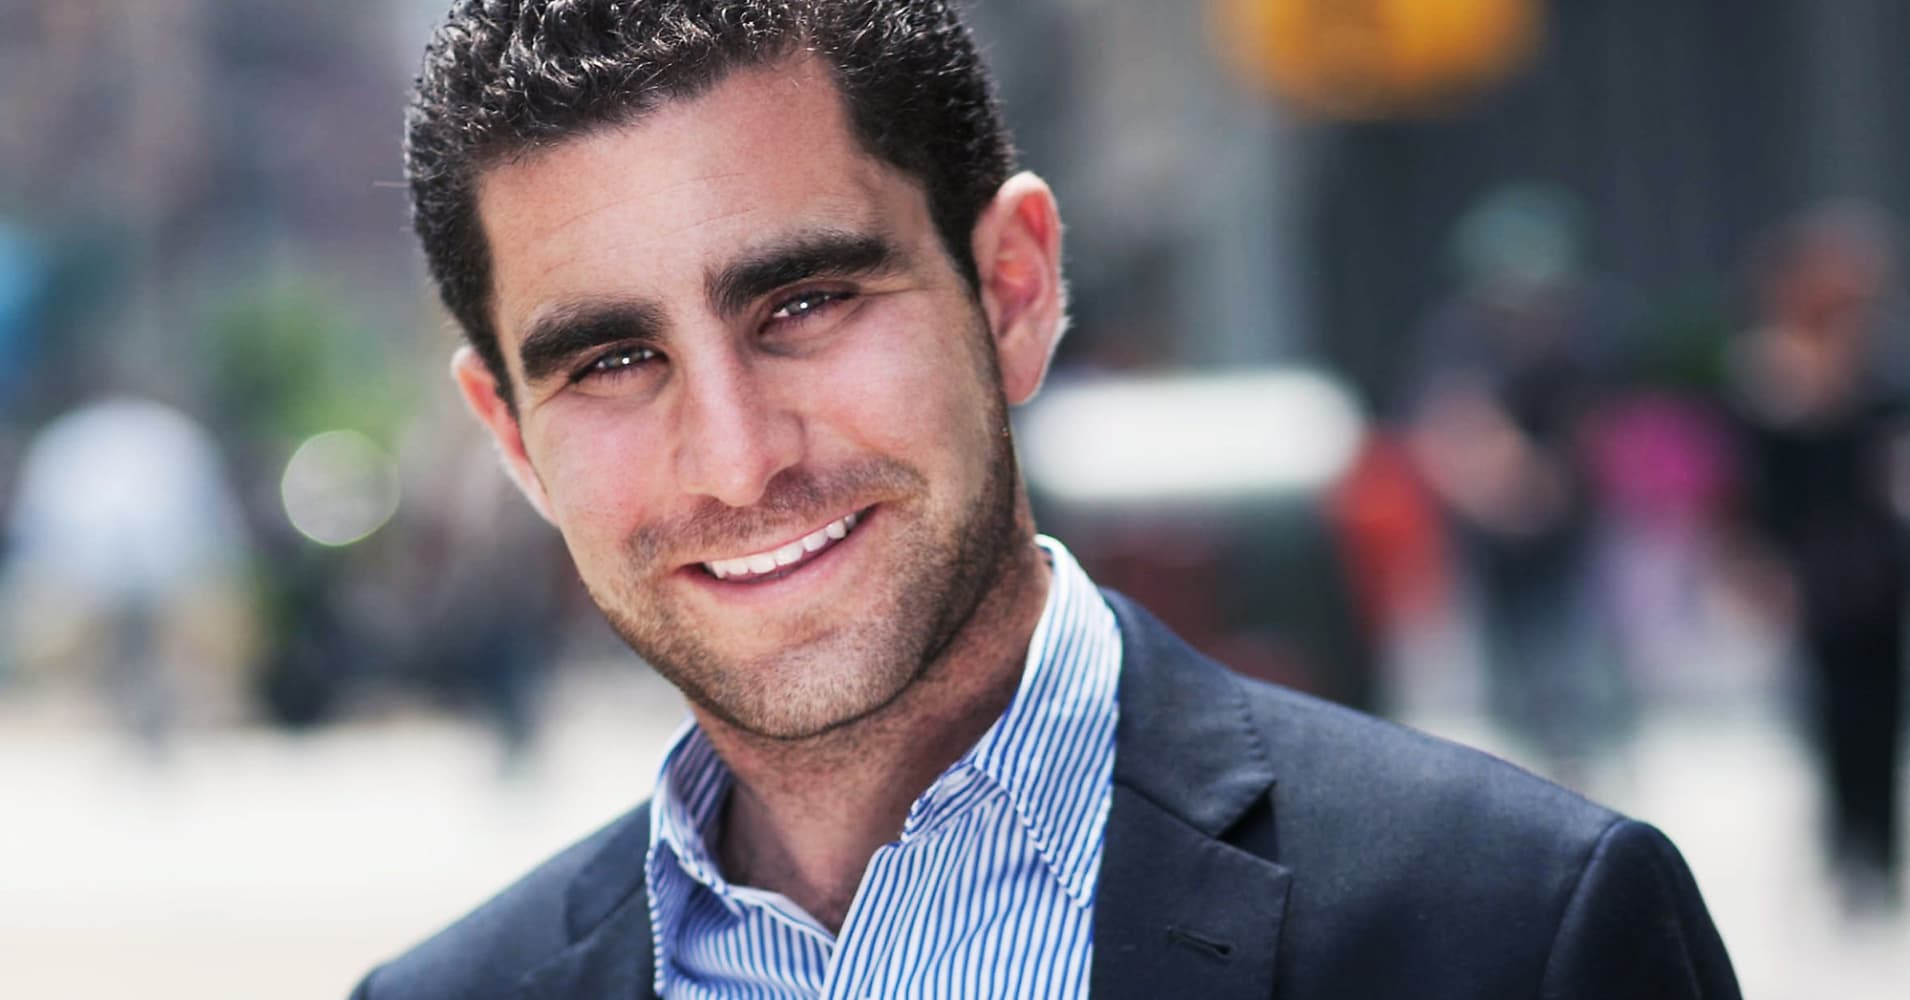 https://fm.cnbc.com/applications/cnbc.com/resources/img/editorial/2014/01/27/101366973-Charlie_Shrem_2013.1910x1000.jpg